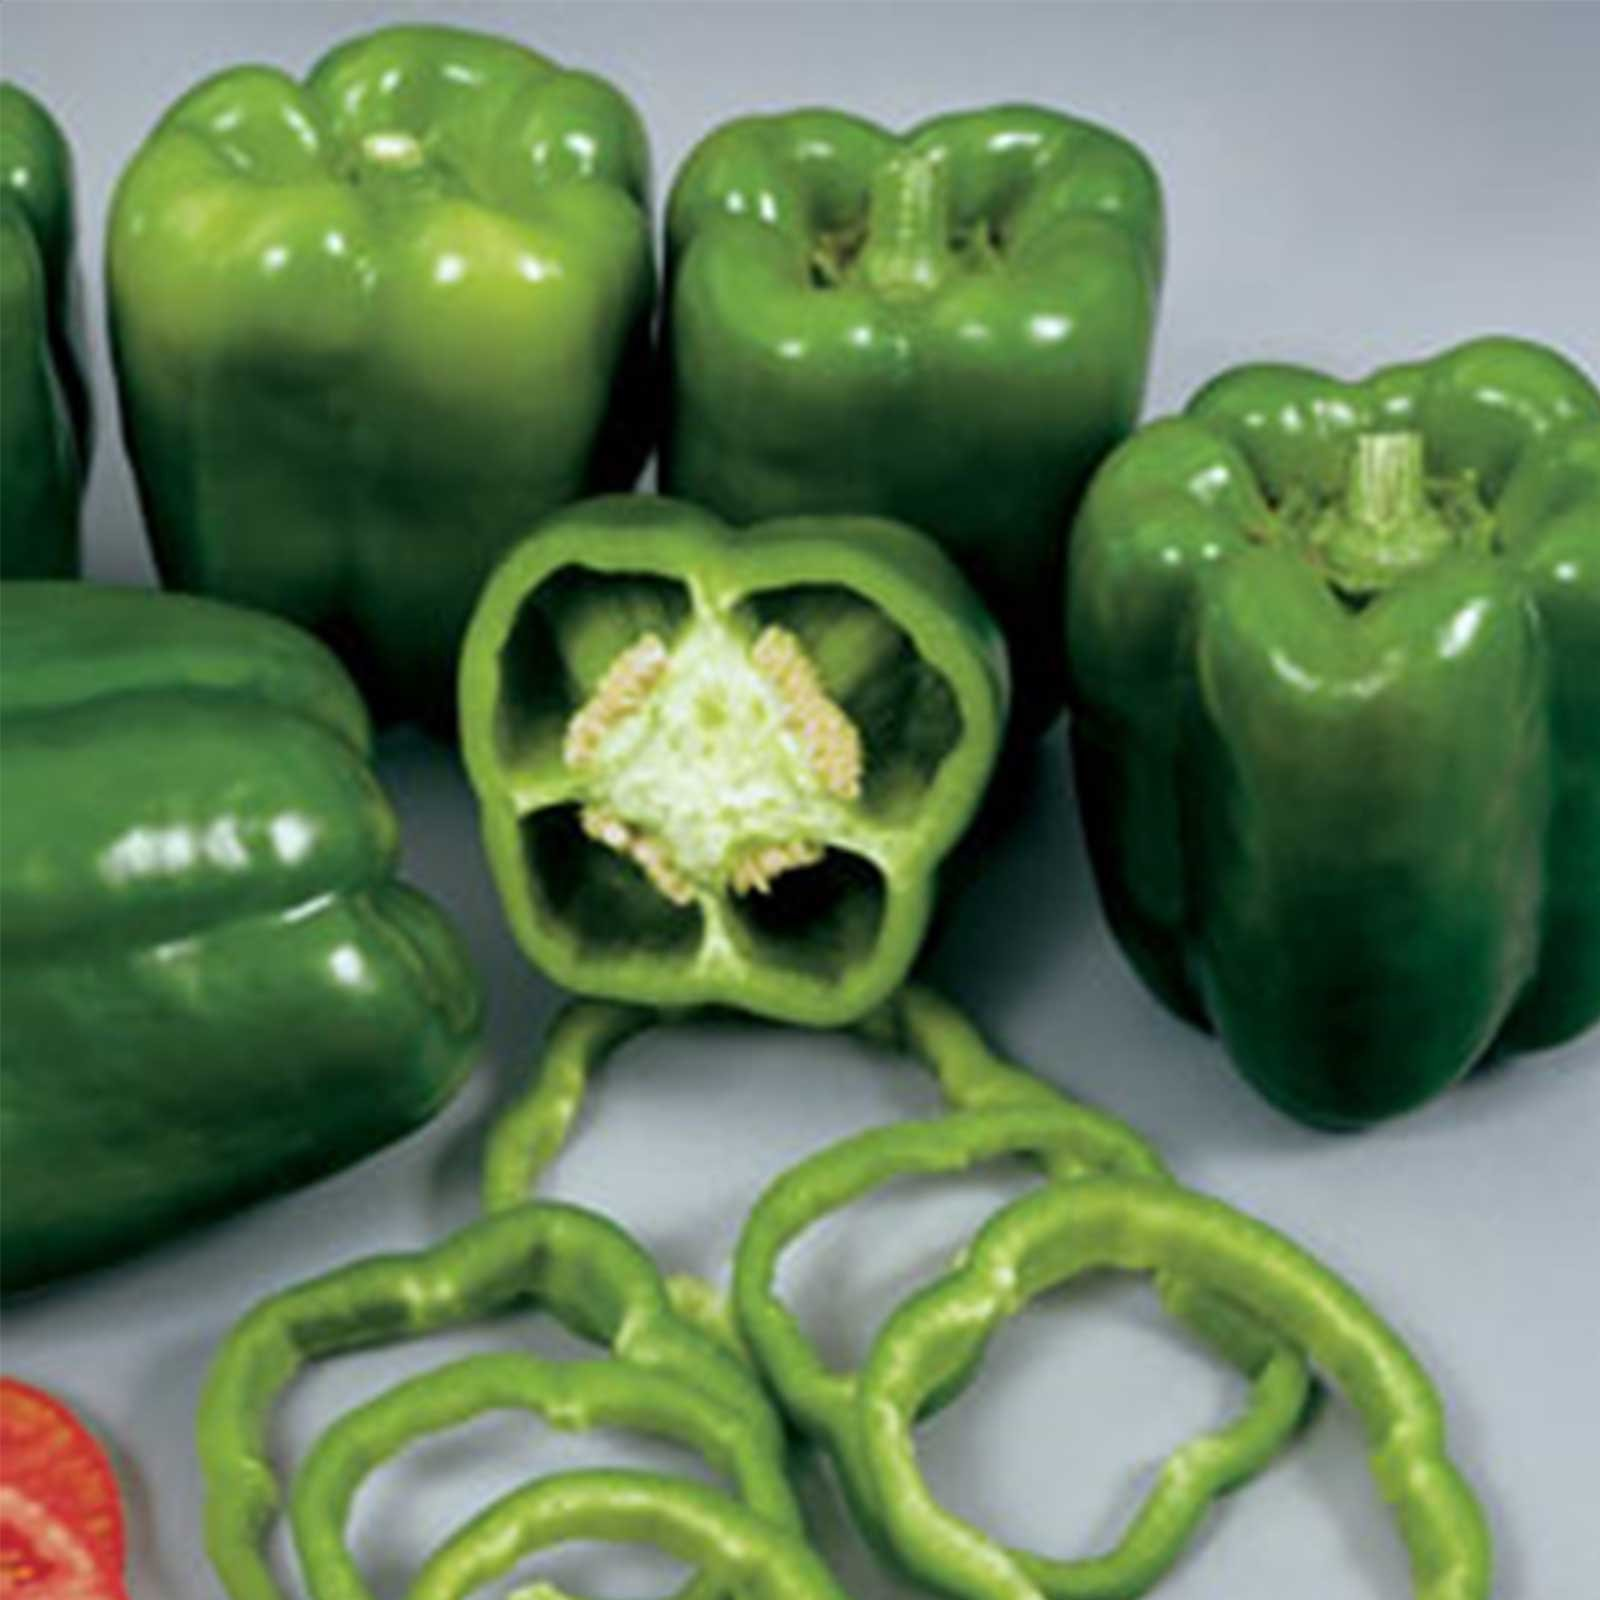 Colossal Hybrid Sweet Pepper Garden Seeds (Treated) - 1000 Seeds - Non-GMO, Green Bell Pepper Vegetable Gardening Seeds by Mountain Valley Seed Company (Image #1)